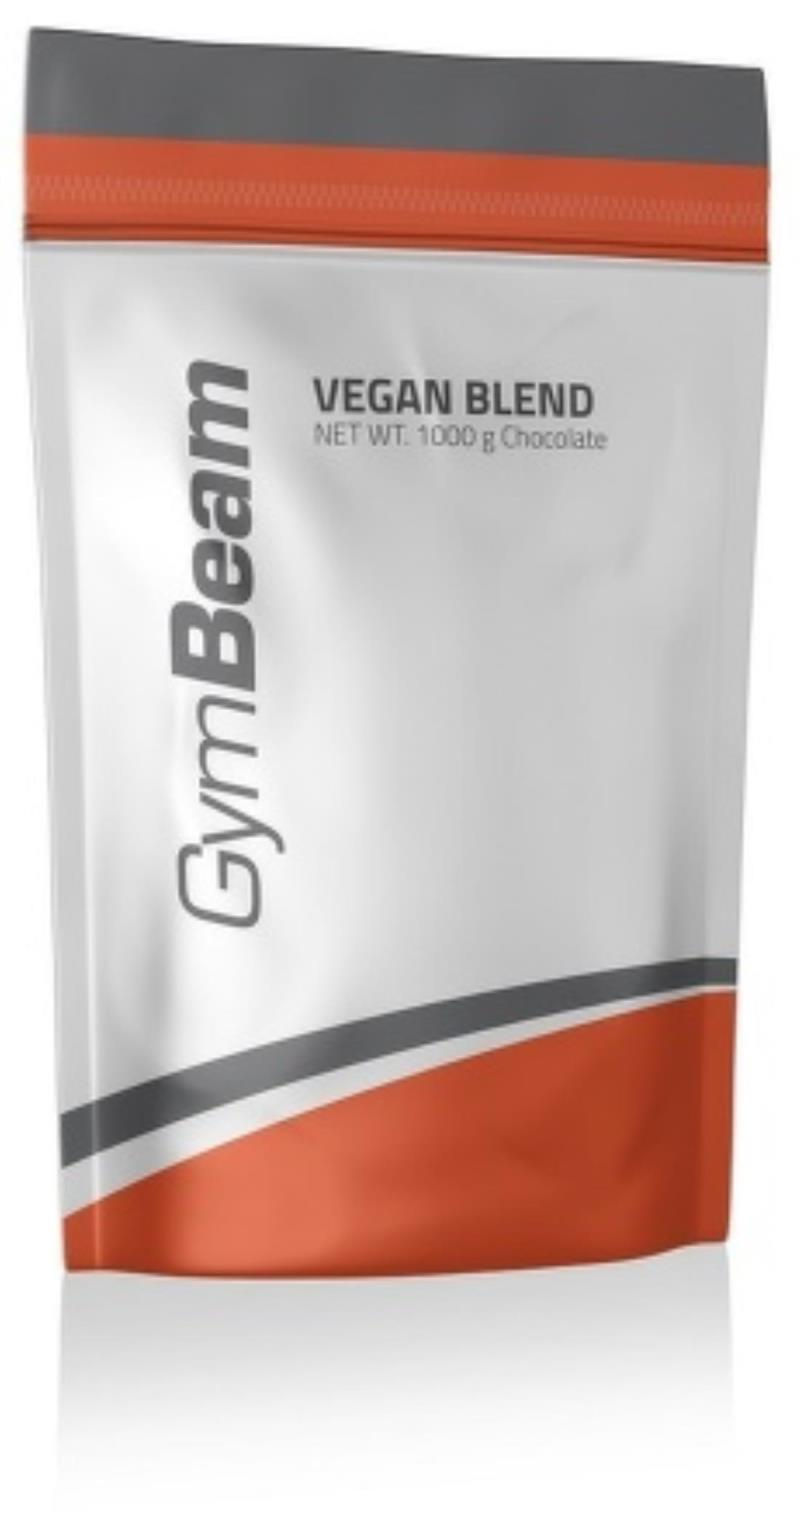 GymBeam Vegan Blend 1000 g unflavored